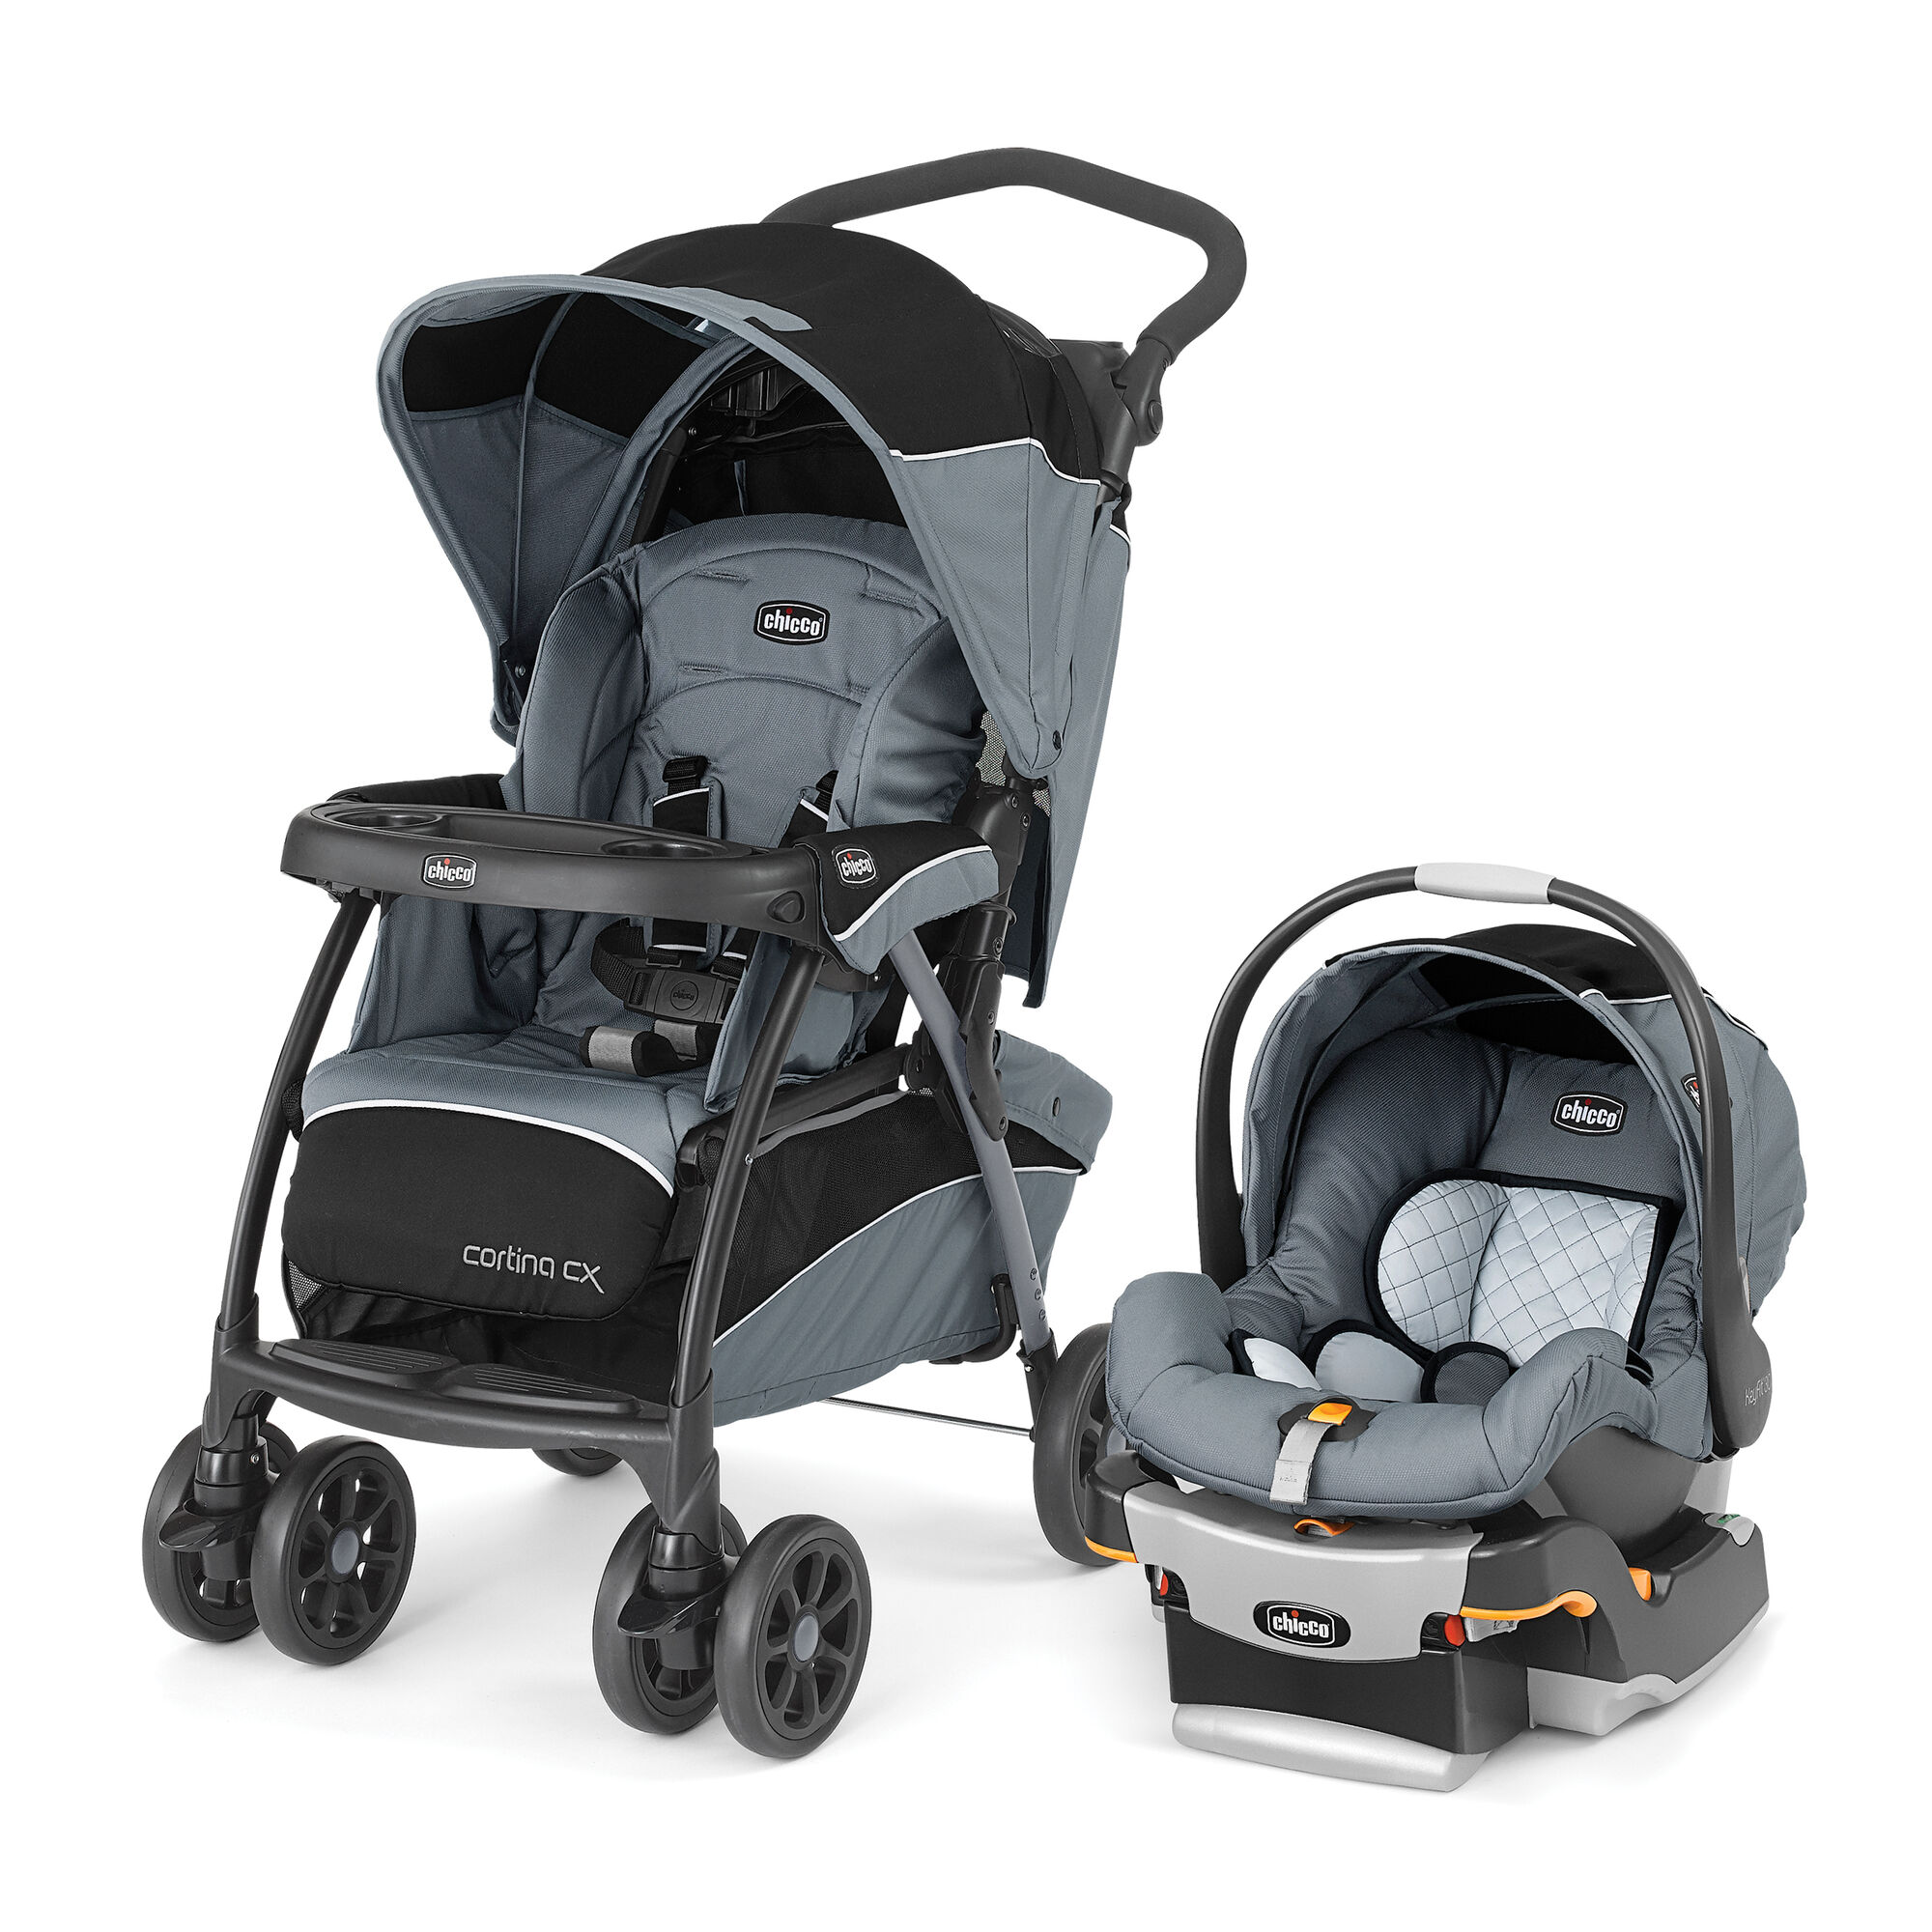 Cortina Cx Travel System Iron Chicco